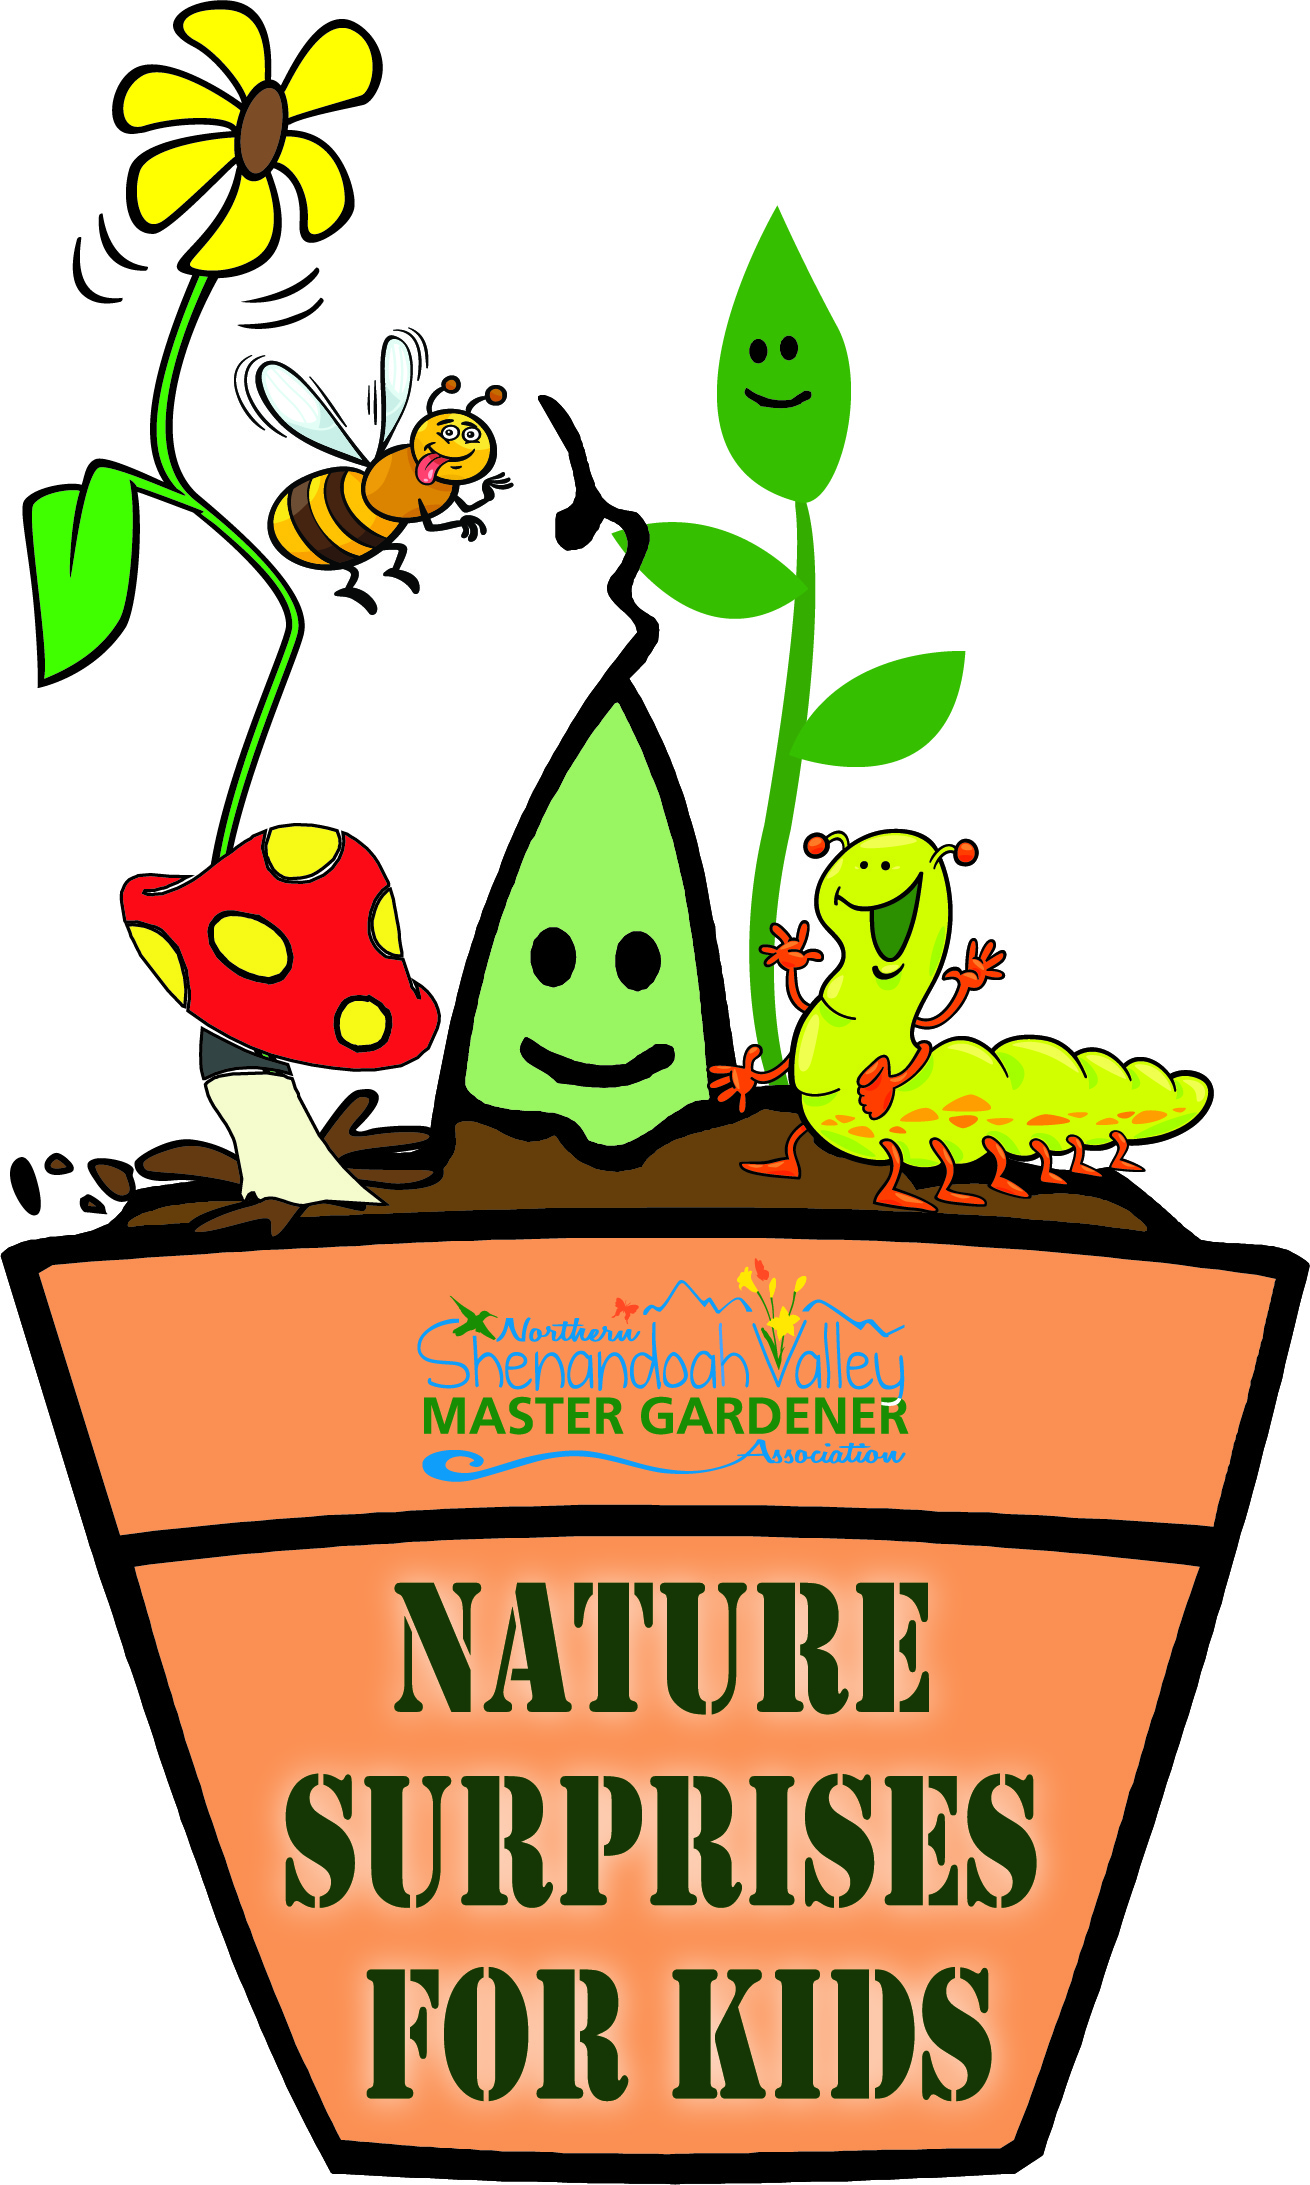 Nature Surprises Logo